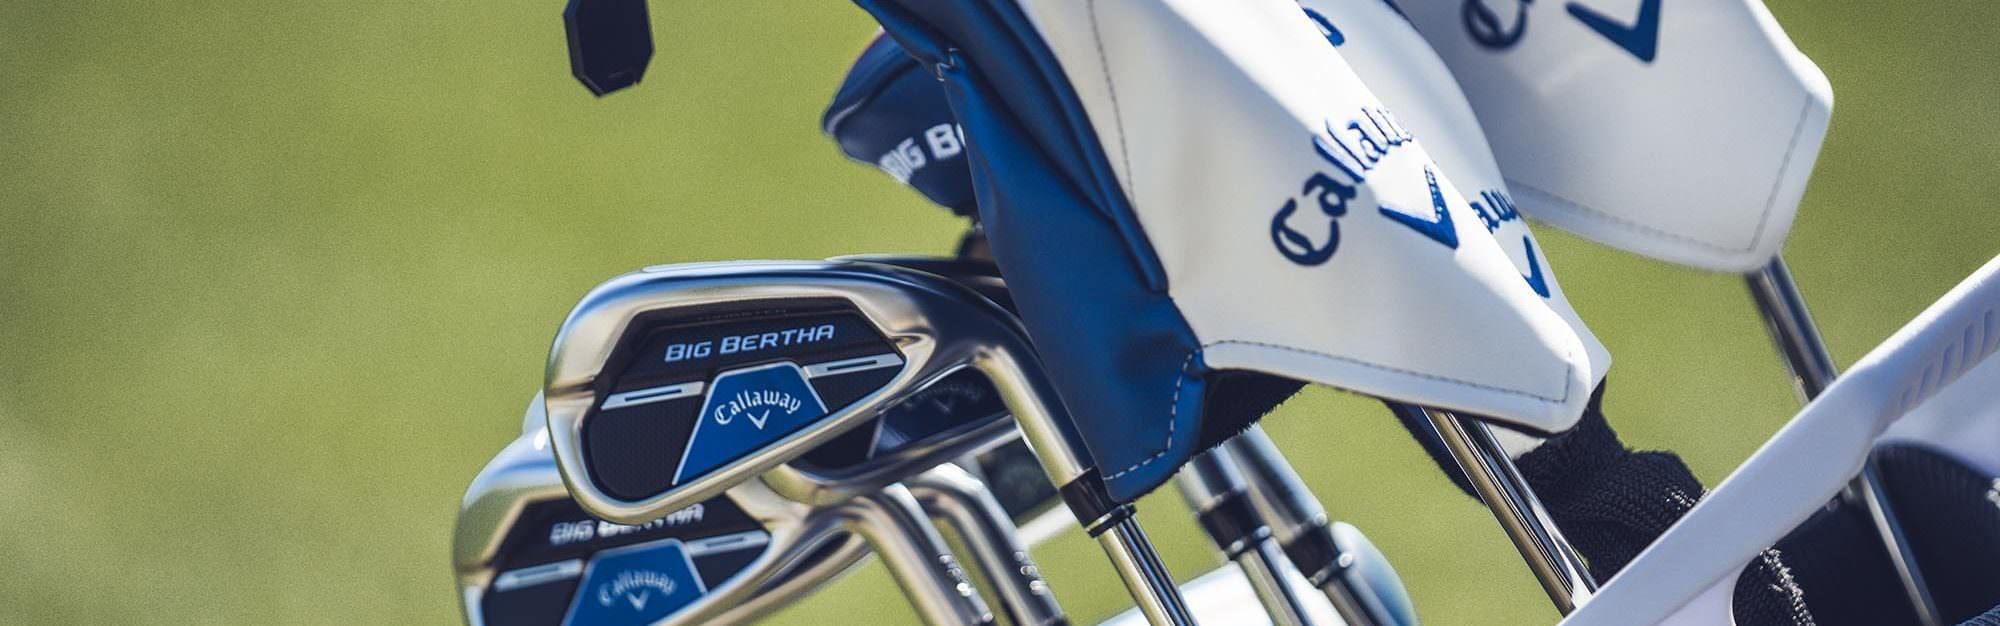 Can Callaway's latest Big Bertha range really cure your slice?